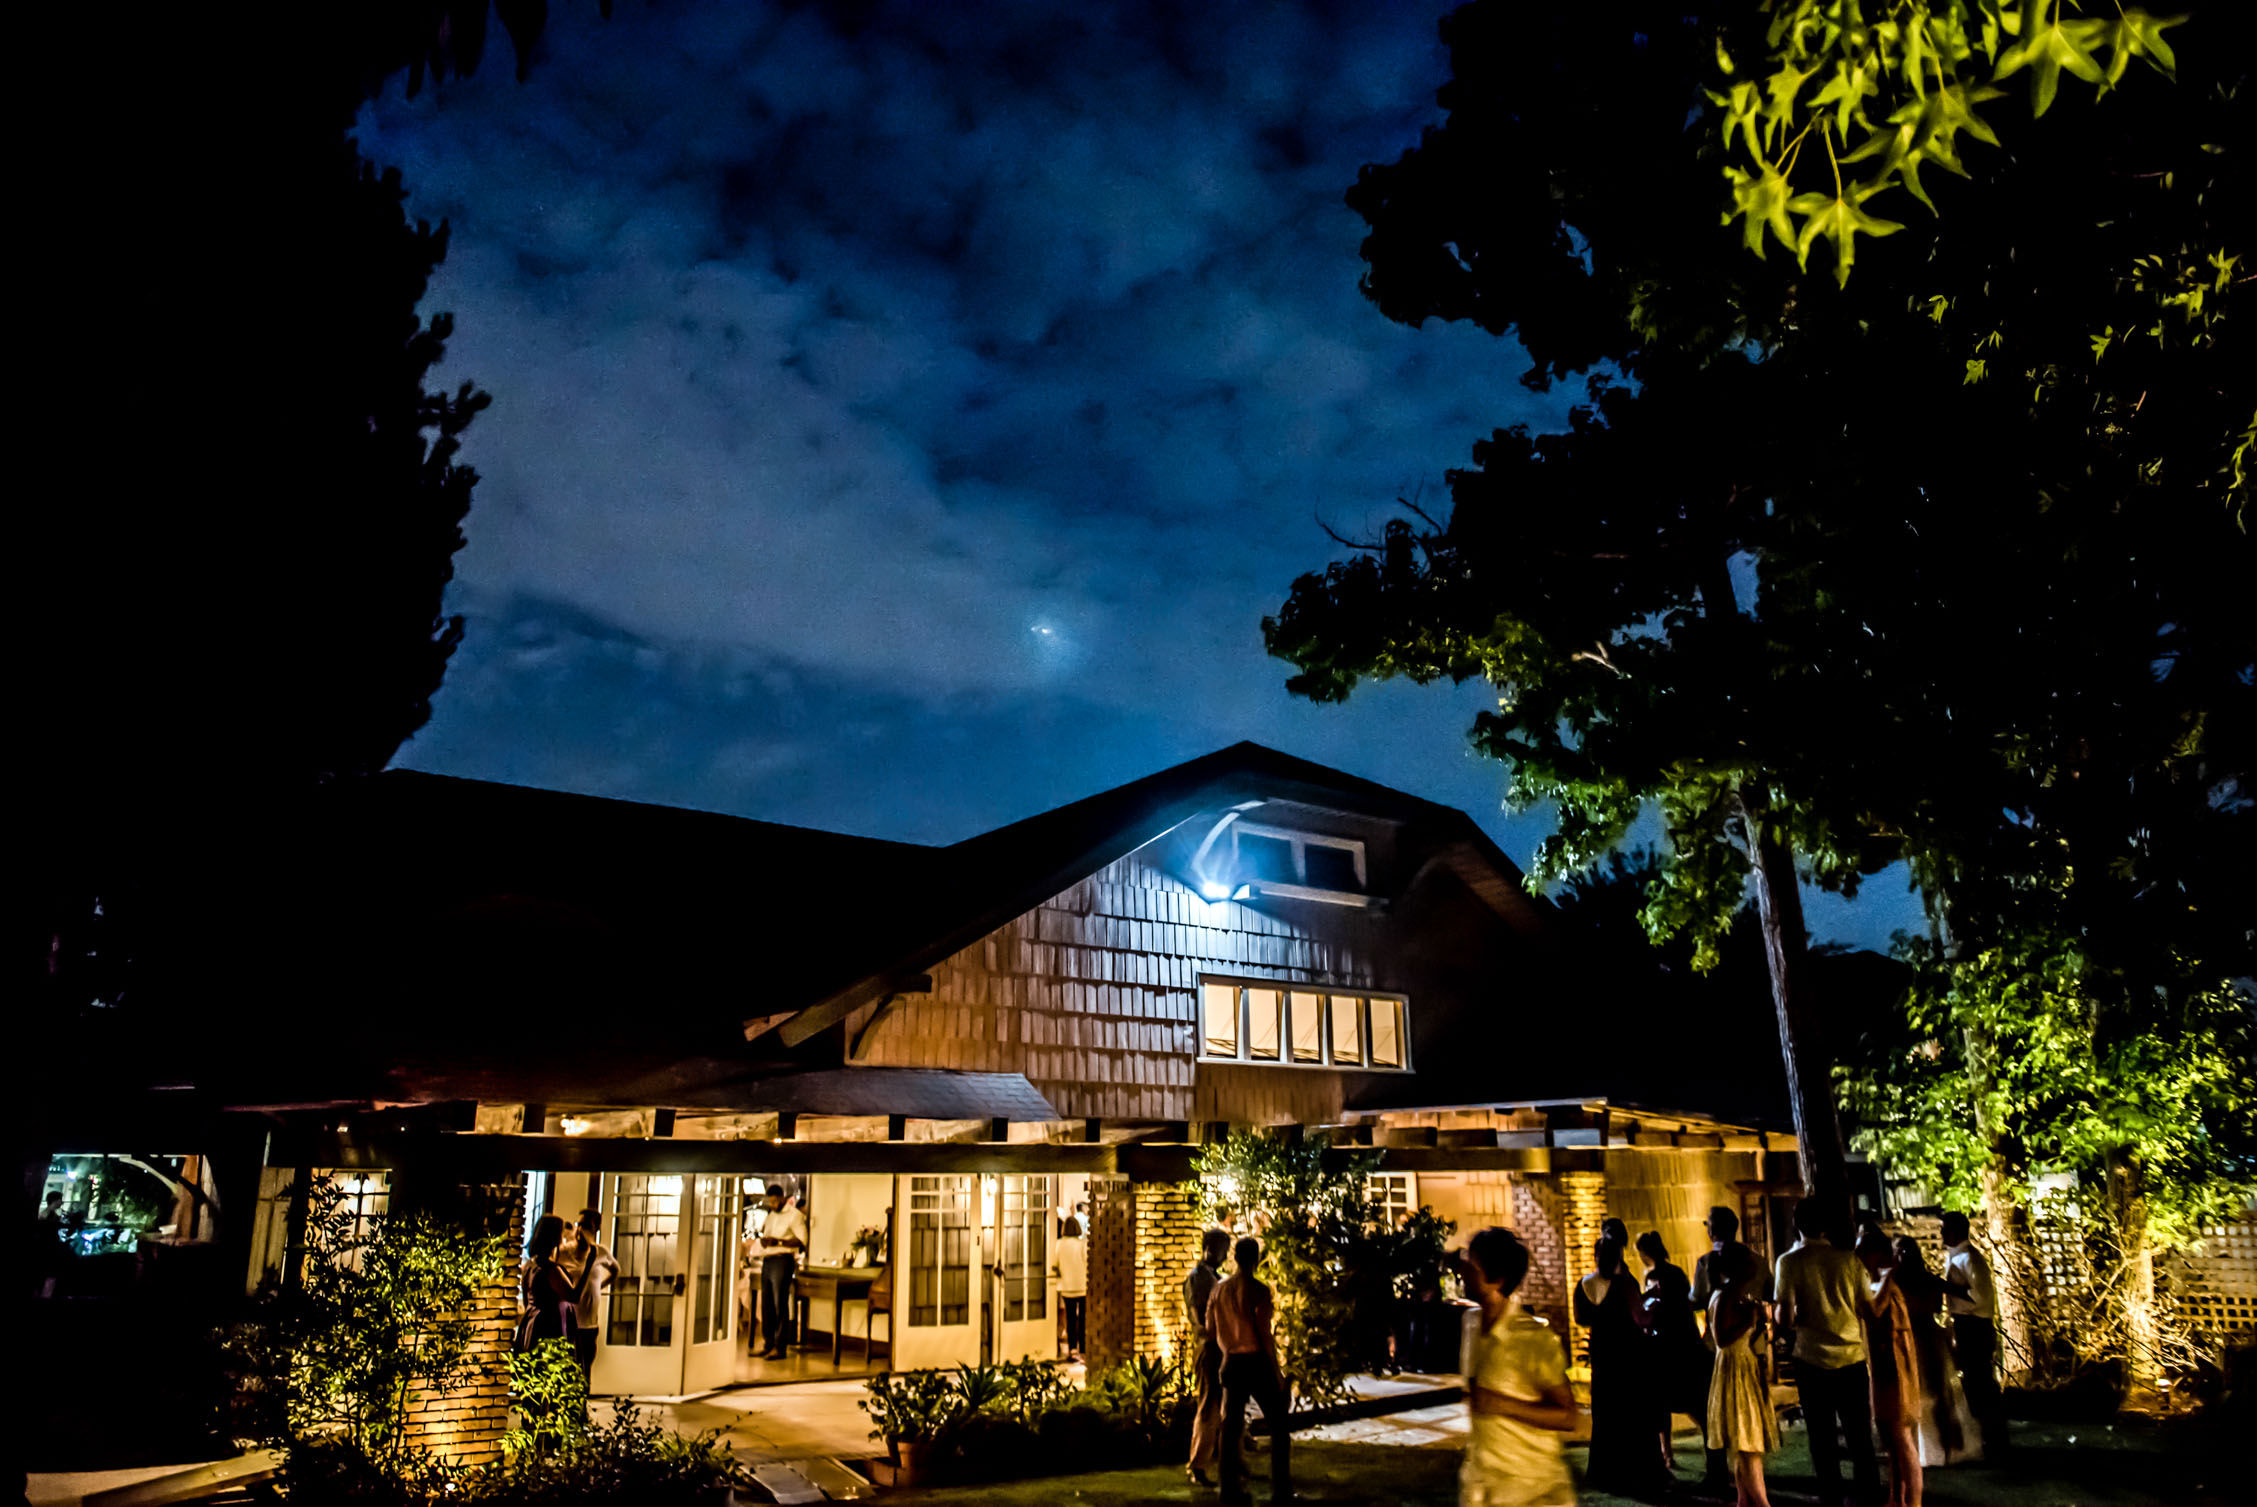 womens twentieth century club wedding at night with moonlit sky